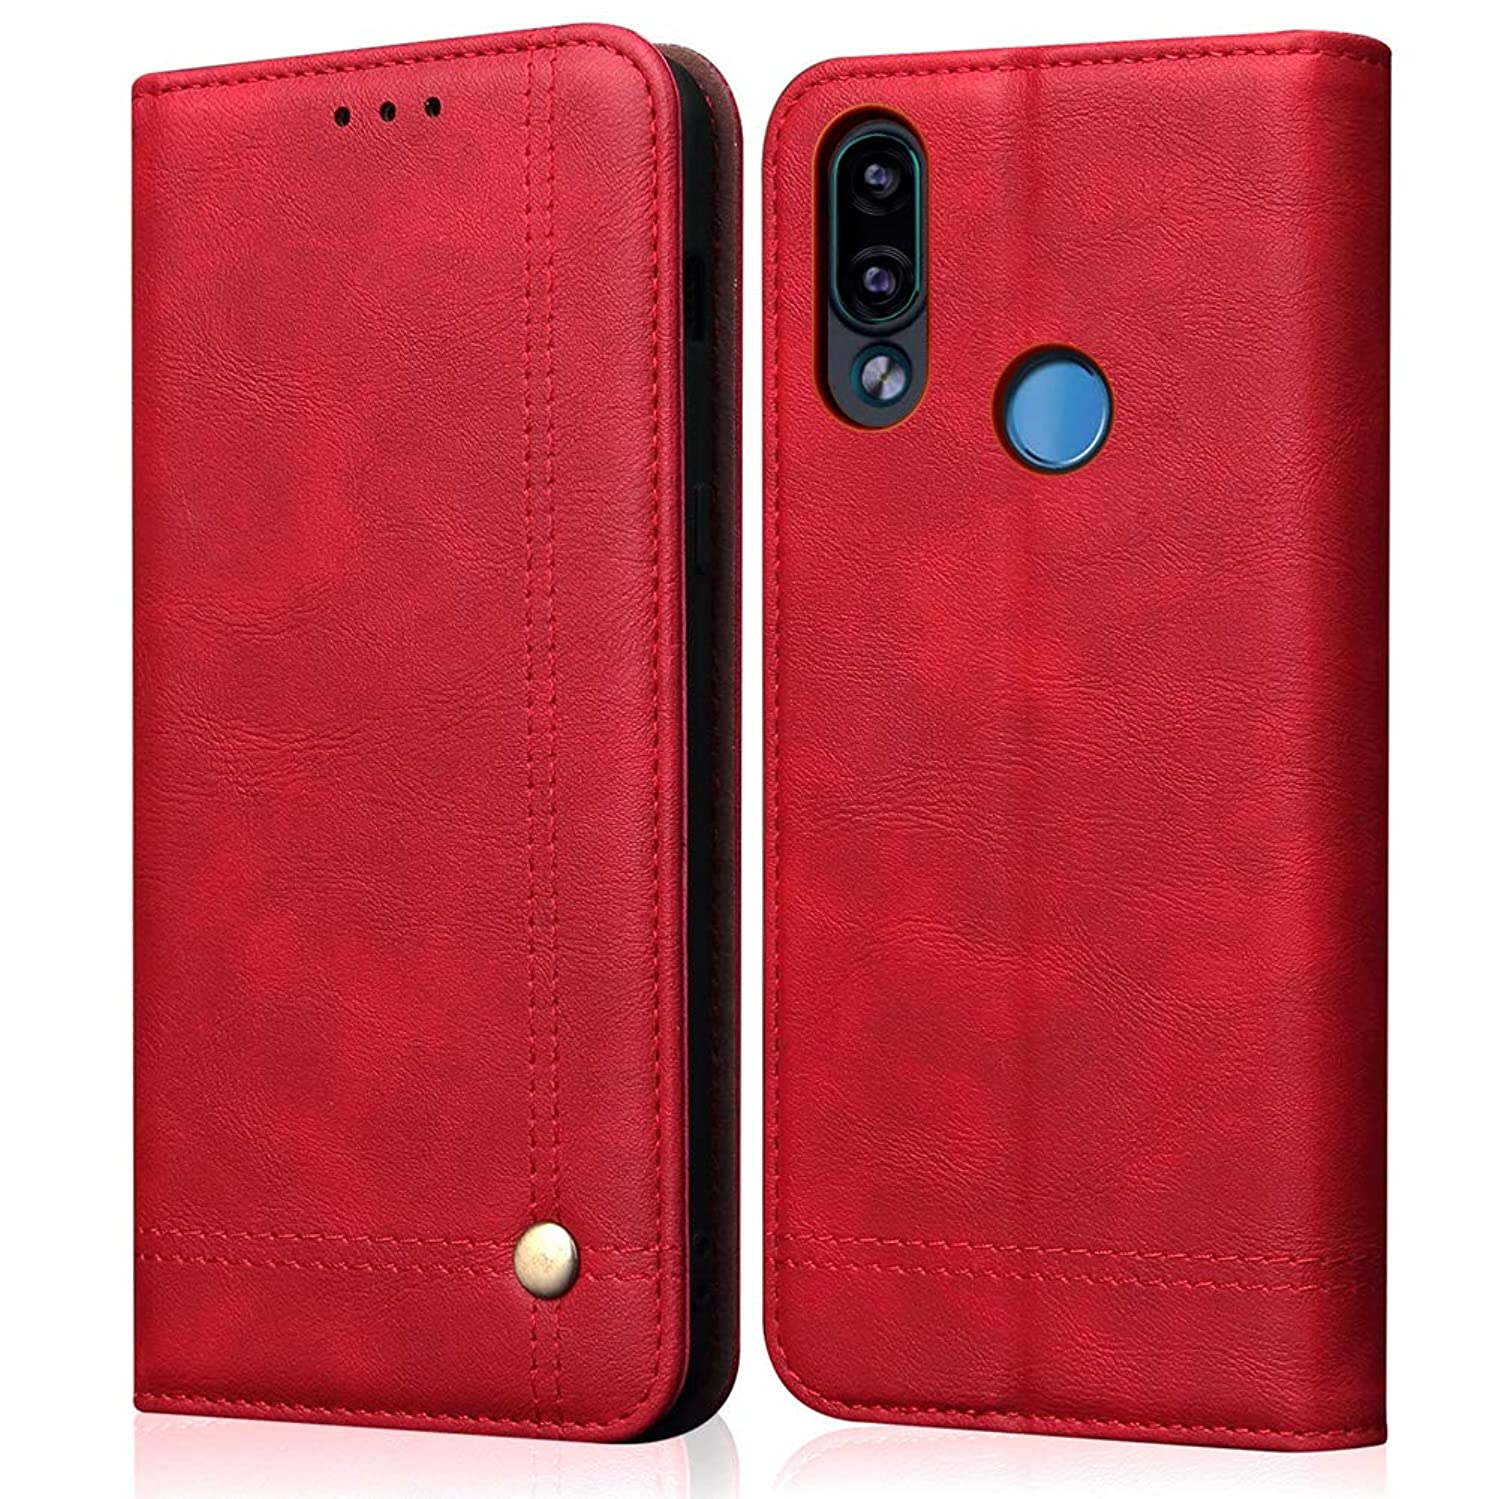 Mayround Compatible for Huawei Enjoy 9 Plus/Y9 2019 Leather Case,Shockproof Folio Book Cover with Credit Card Slots Leather Wallet Cases Compatible for Huawei Enjoy 9 Plus/Y9 2019 6.5